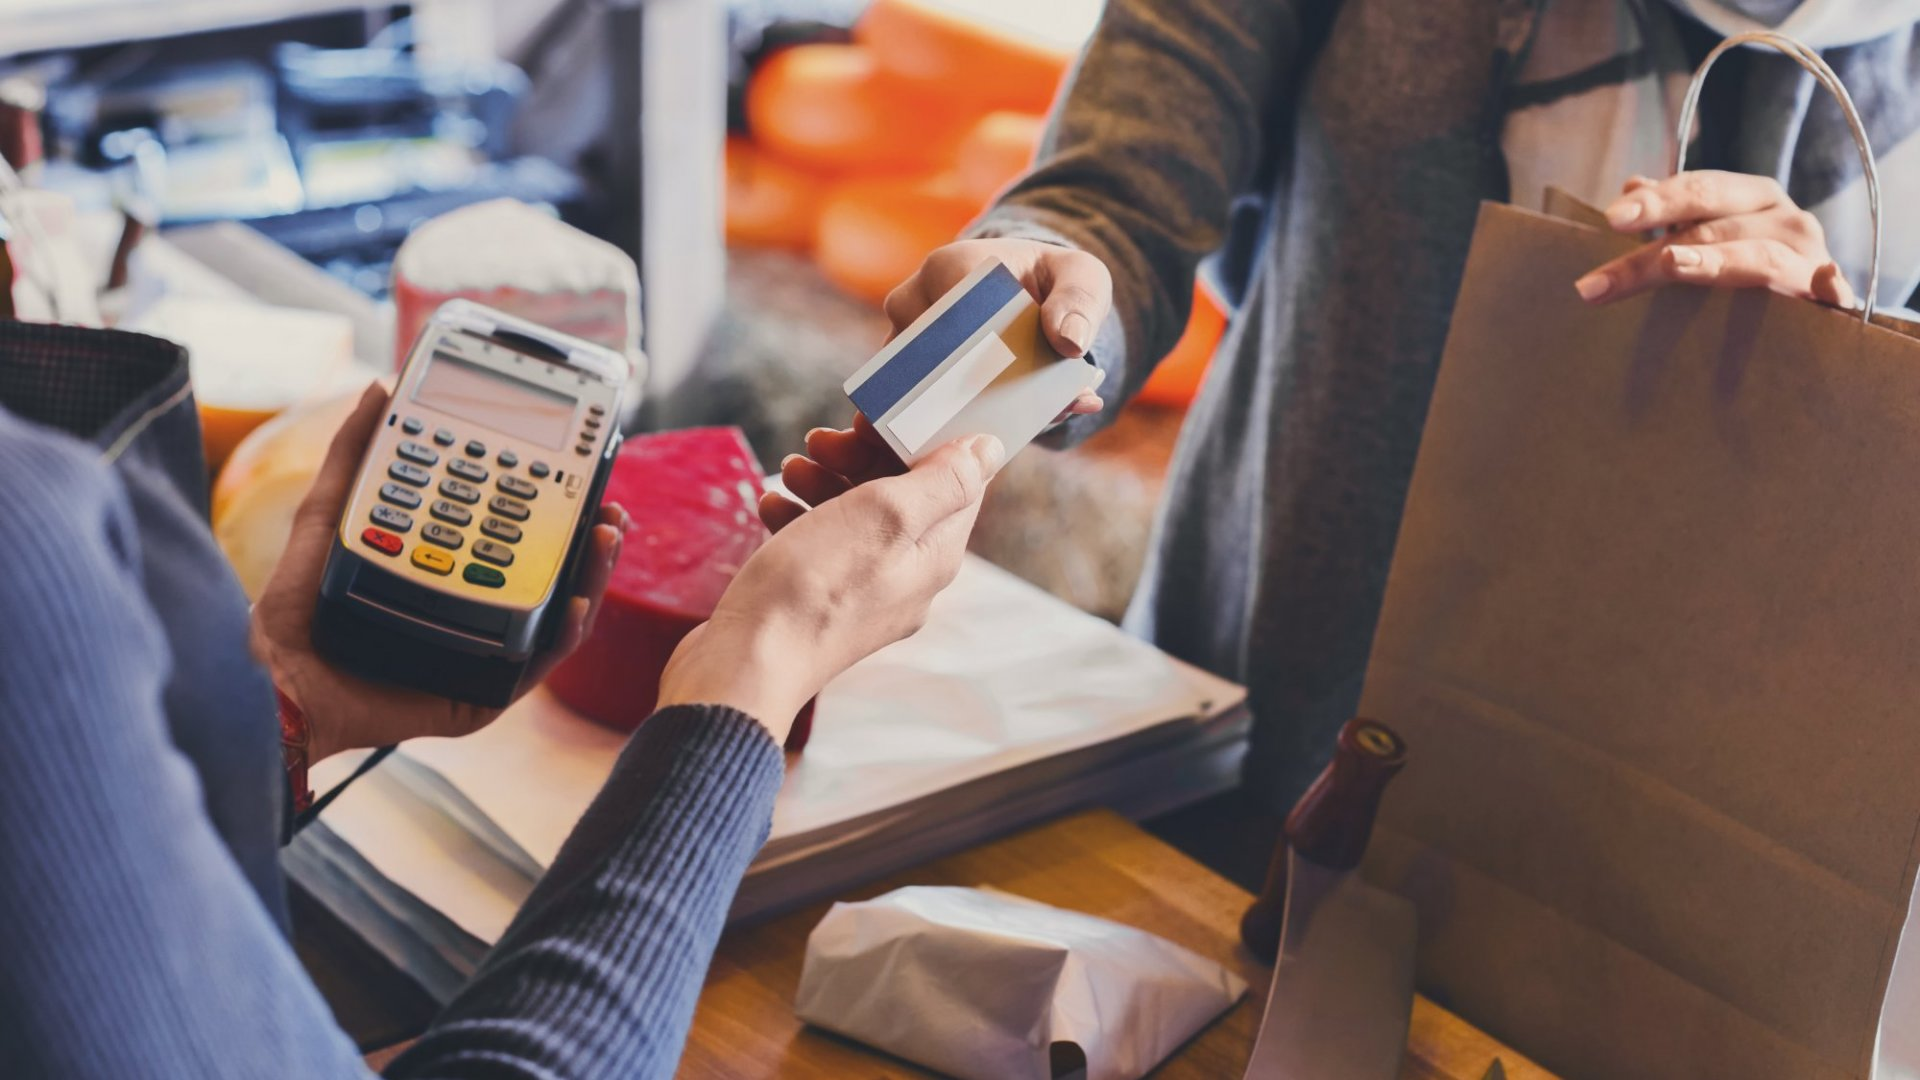 Retailers: How to Integrate Technology Into Your Brick-and-Mortar Space